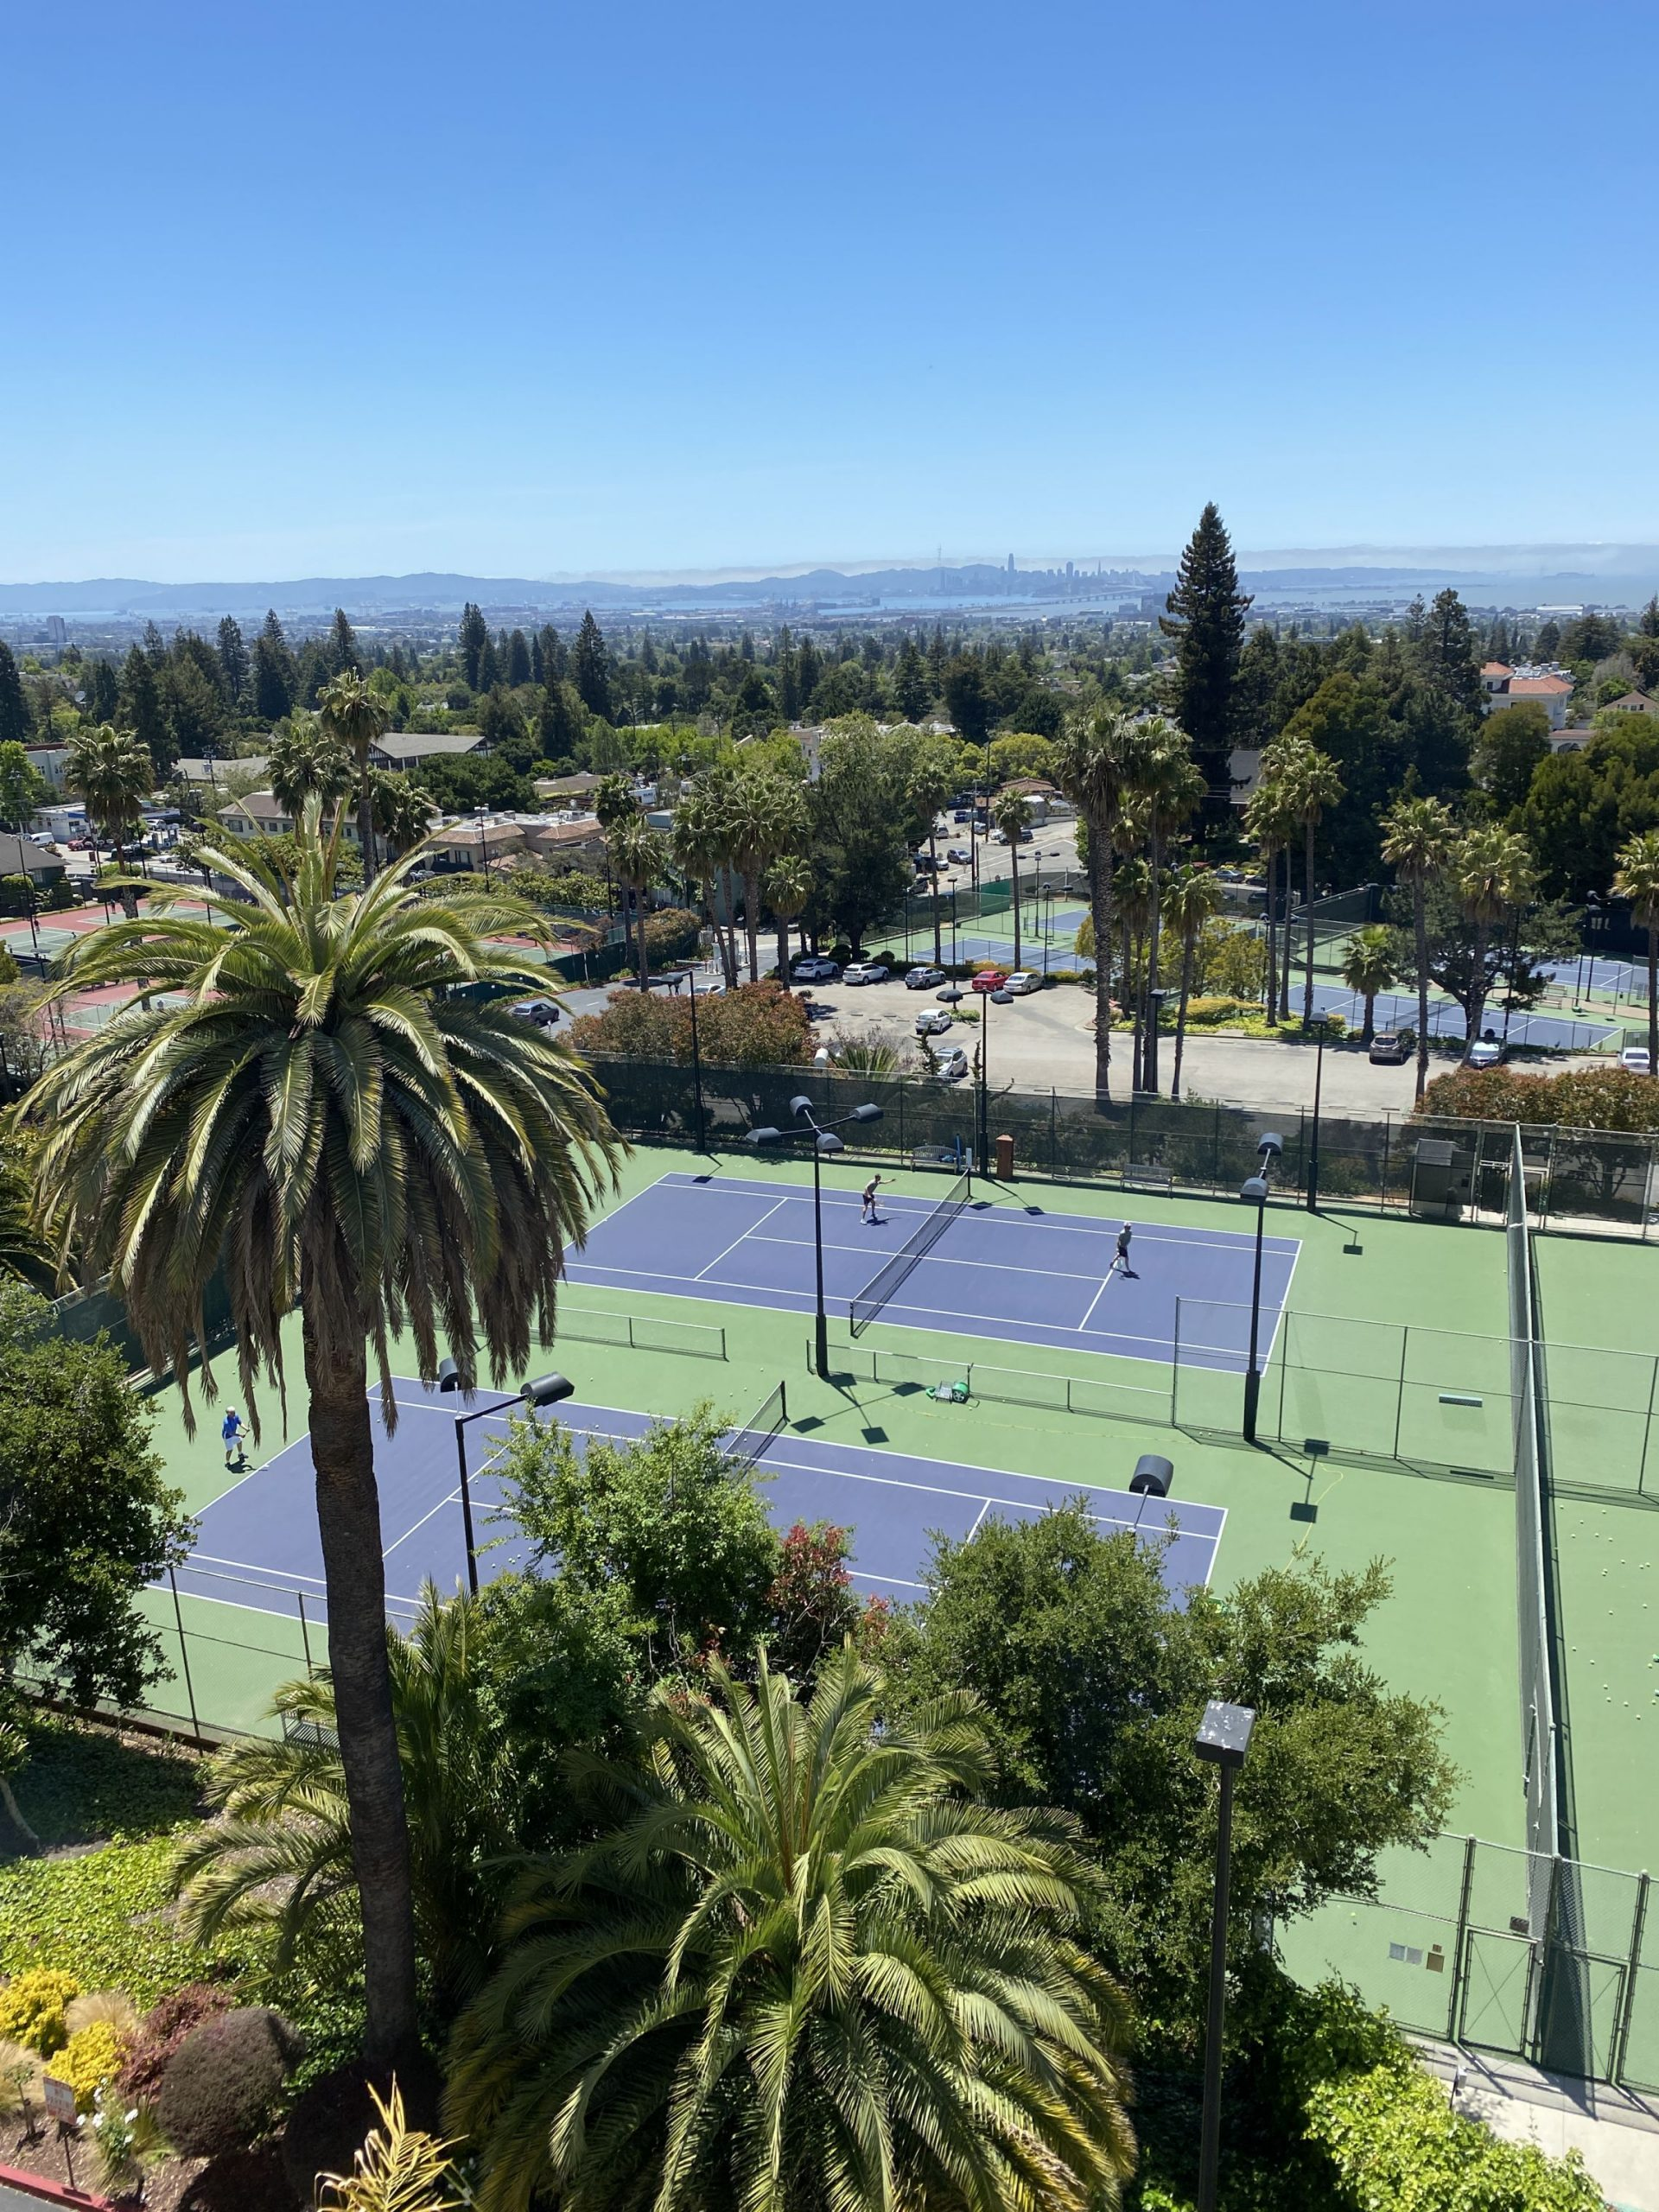 The view from my room at the Claremont Hotel And Spa